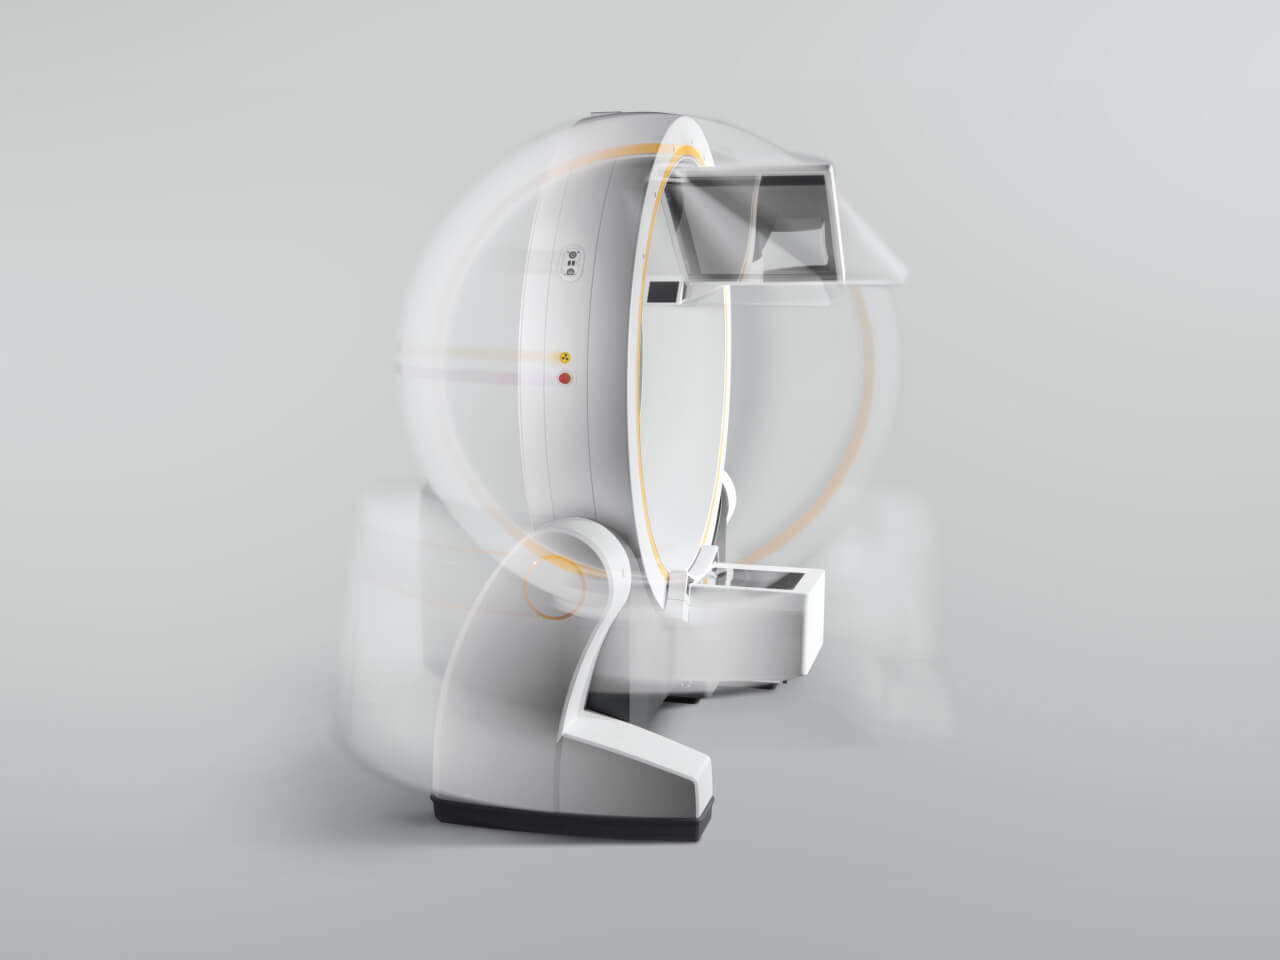 Brainlab Loop-X conebeam-ct flexible imaging